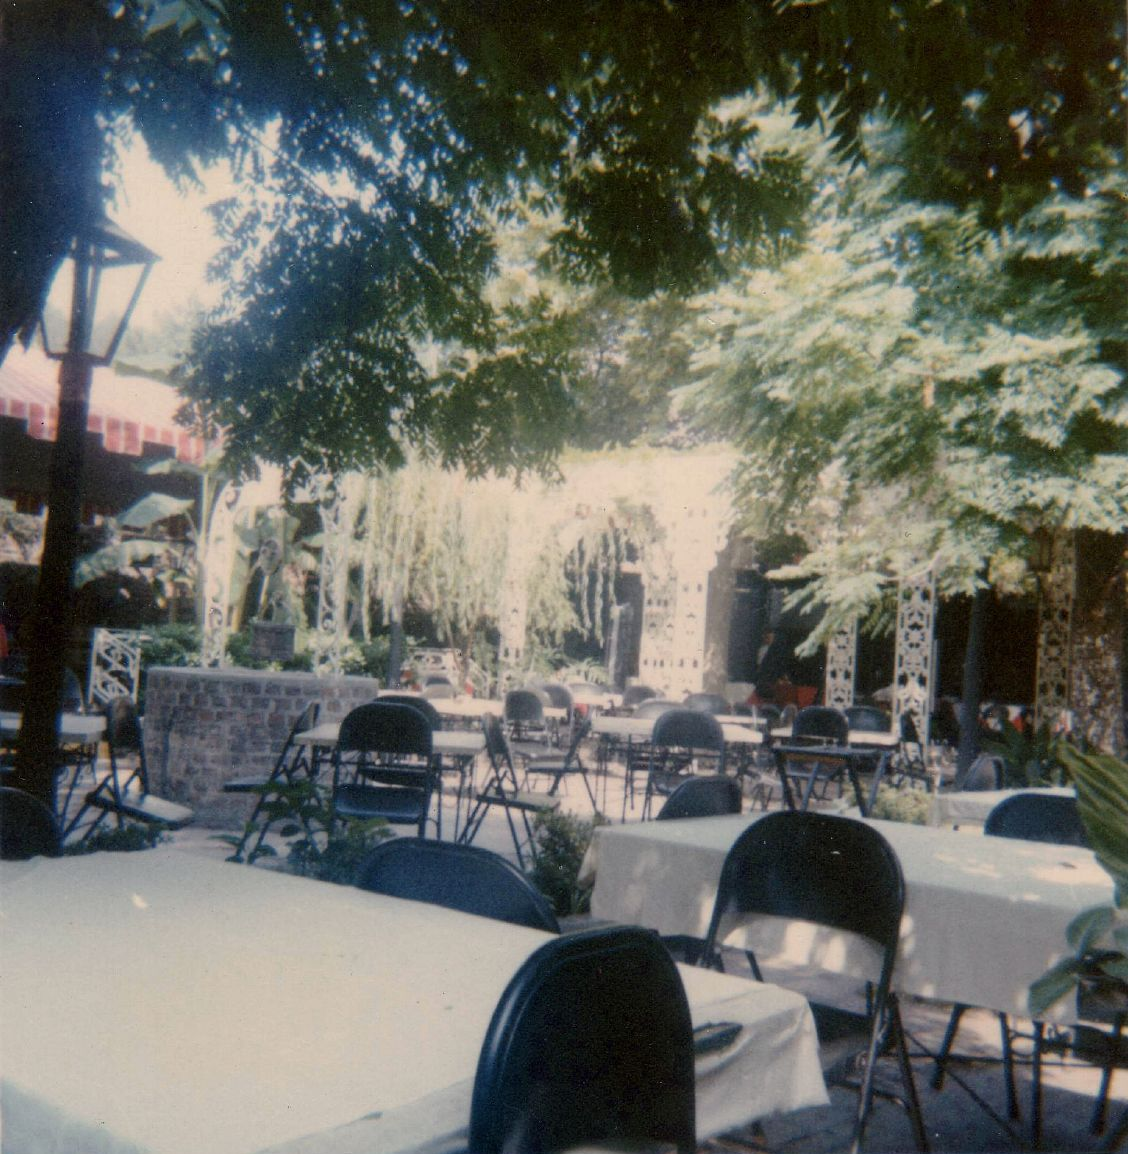 Dining tables set up in the courtyard.